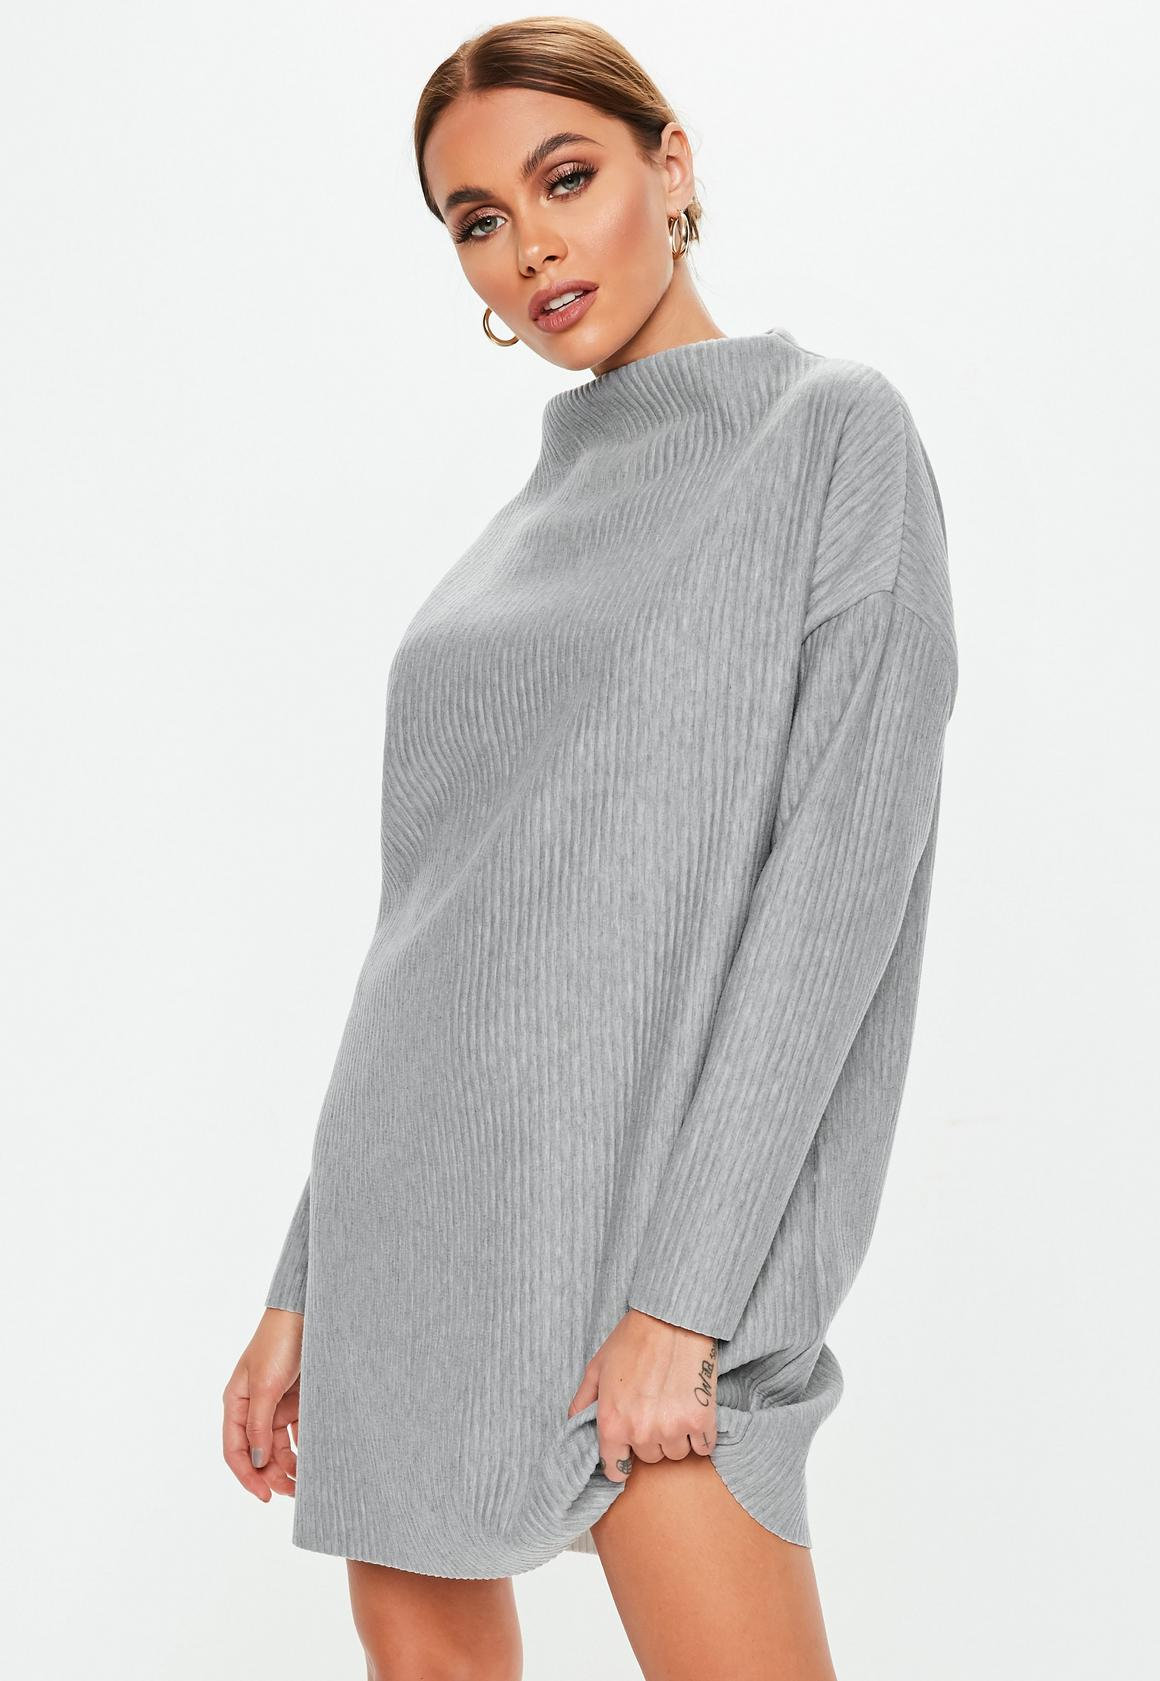 Petite Gray Oversized Ribbed Sweater Dress. Hover to Zoom 8483bdebf